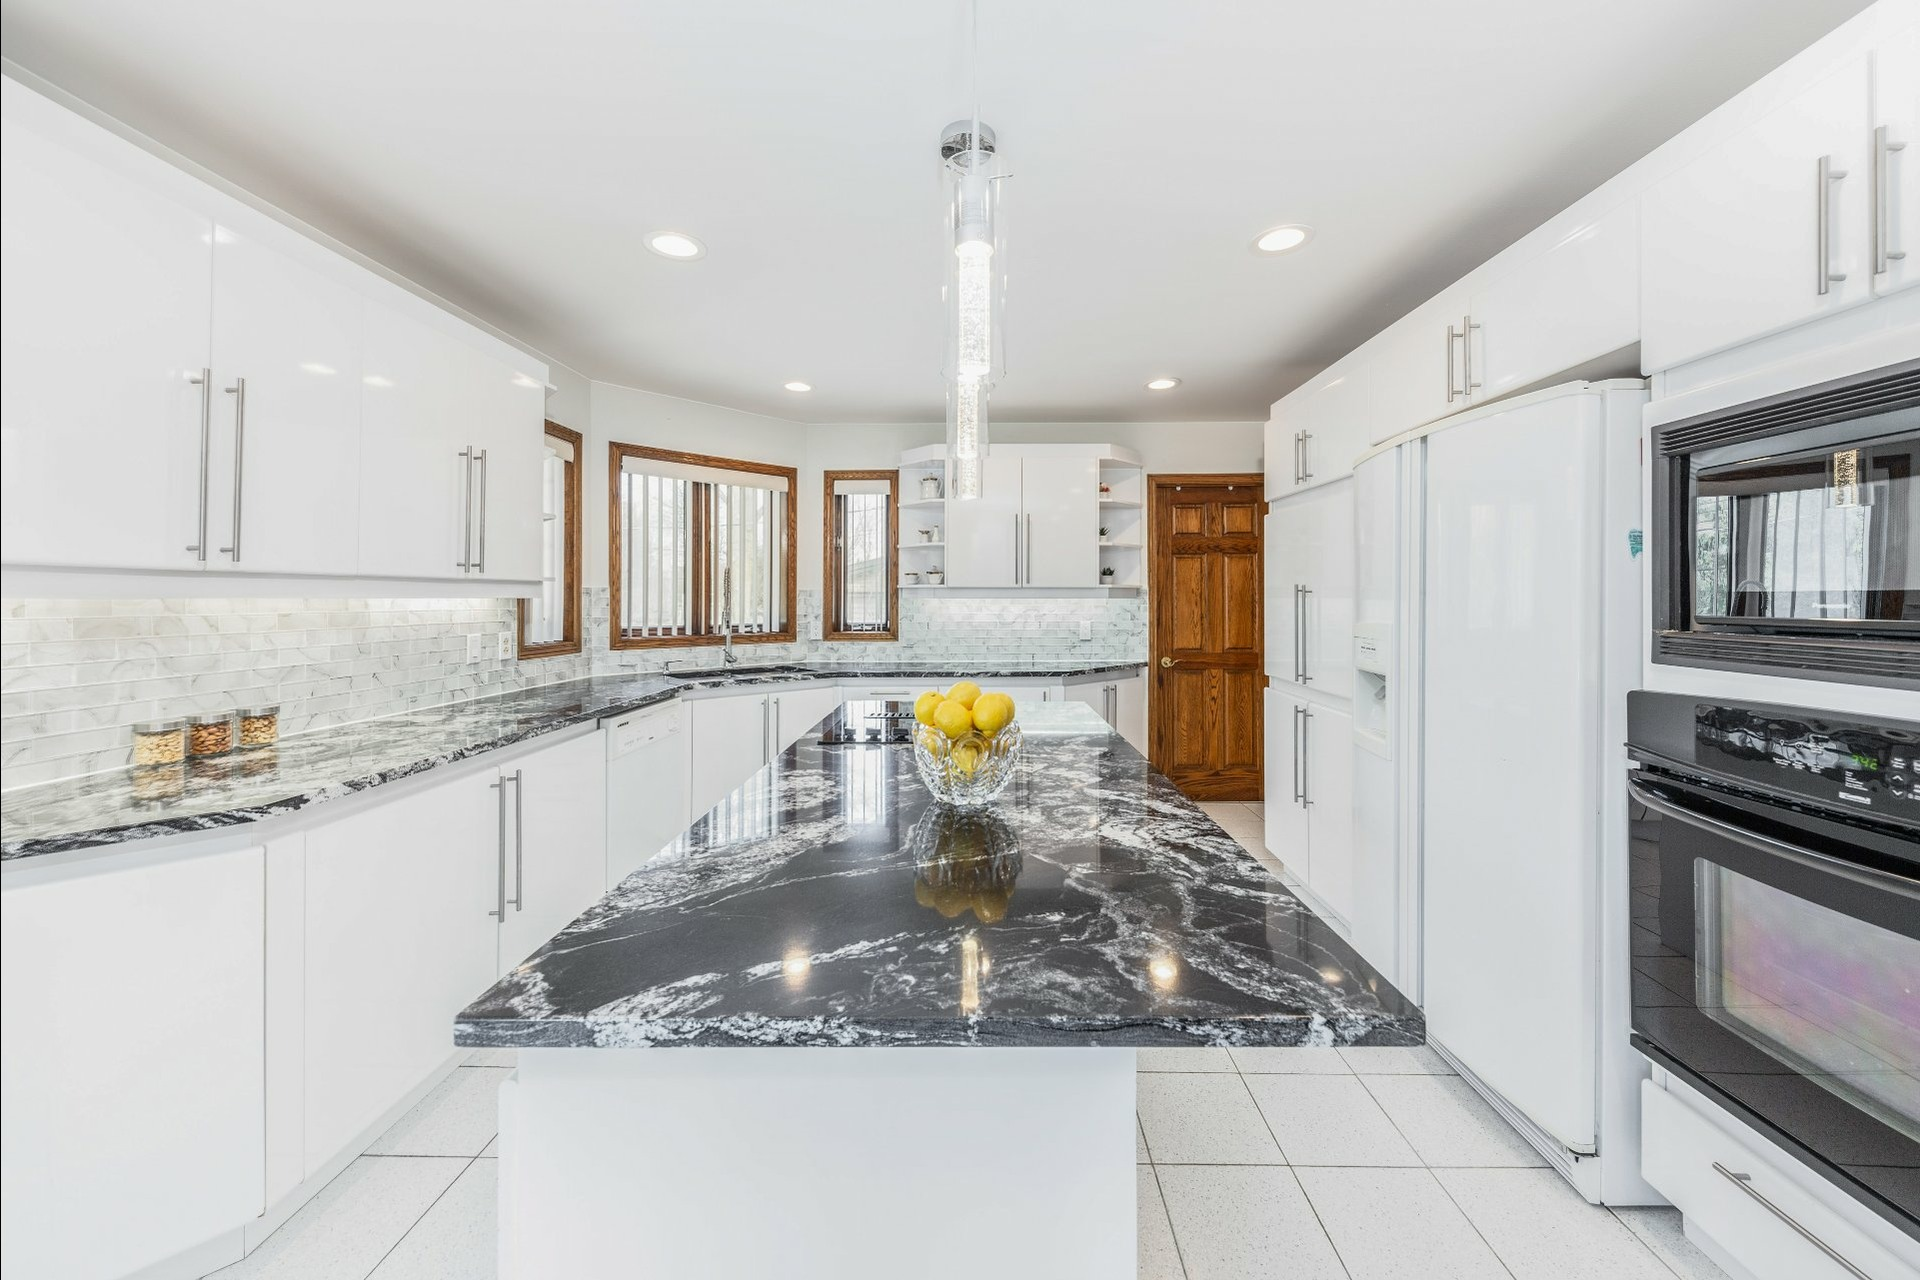 image 5 - House For sale Beaconsfield - 15 rooms